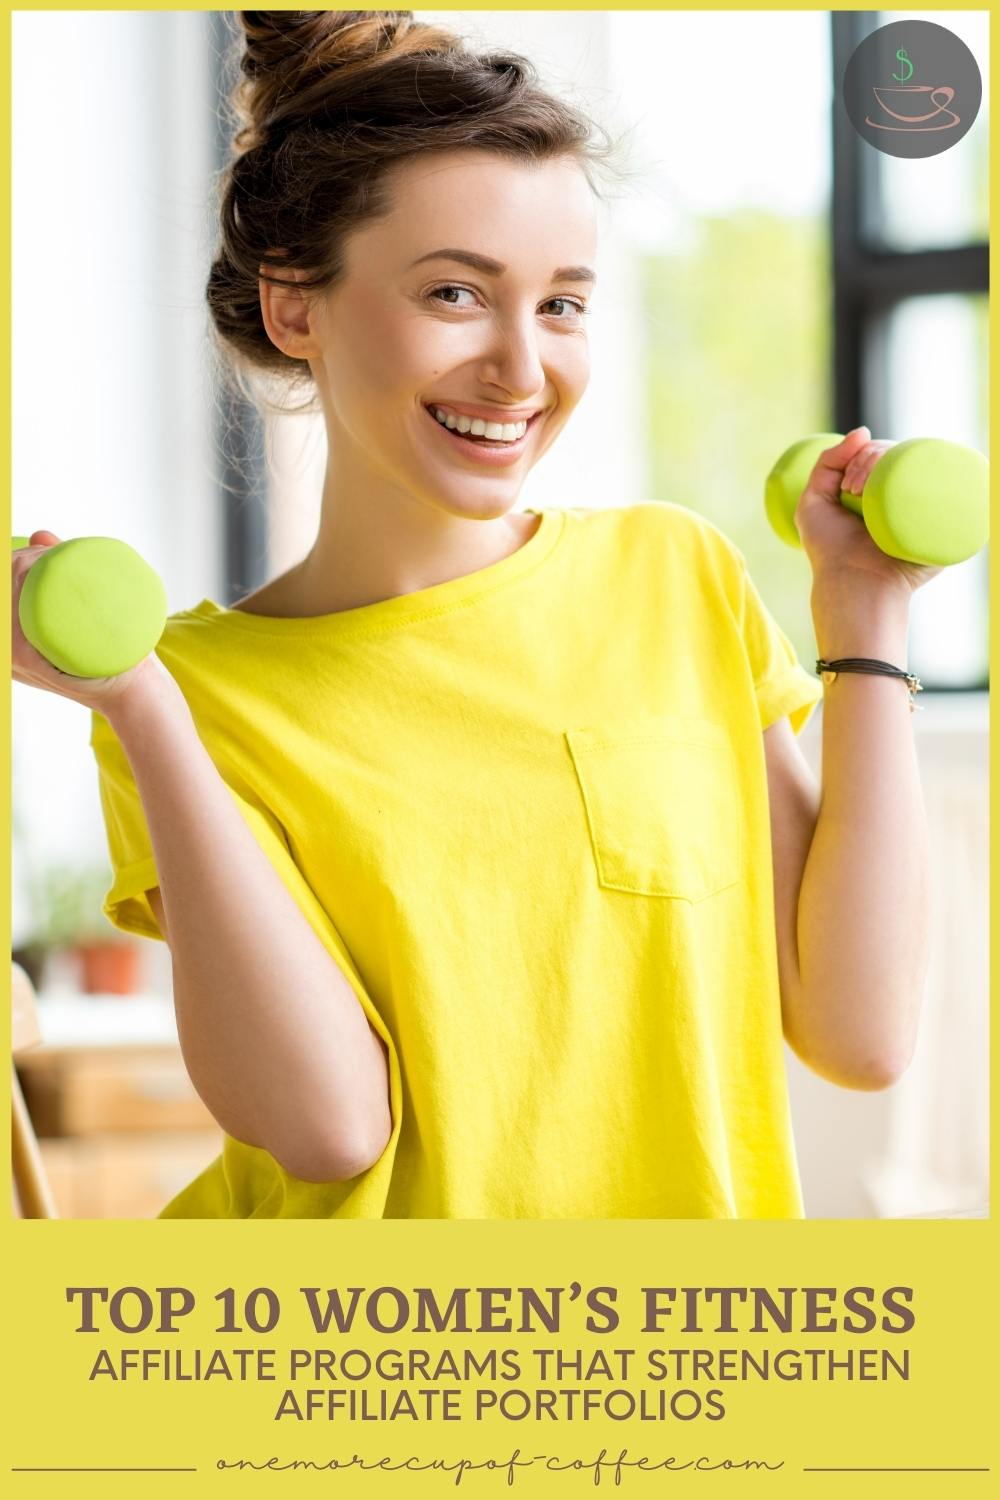 """smiling woman in yellow top holding a yellow green small dumbbell in each hand, with text at the bottom in yellow green banner """"Top 10 Women's Fitness Affiliate Programs That Strengthen Affiliate Portfolios"""""""